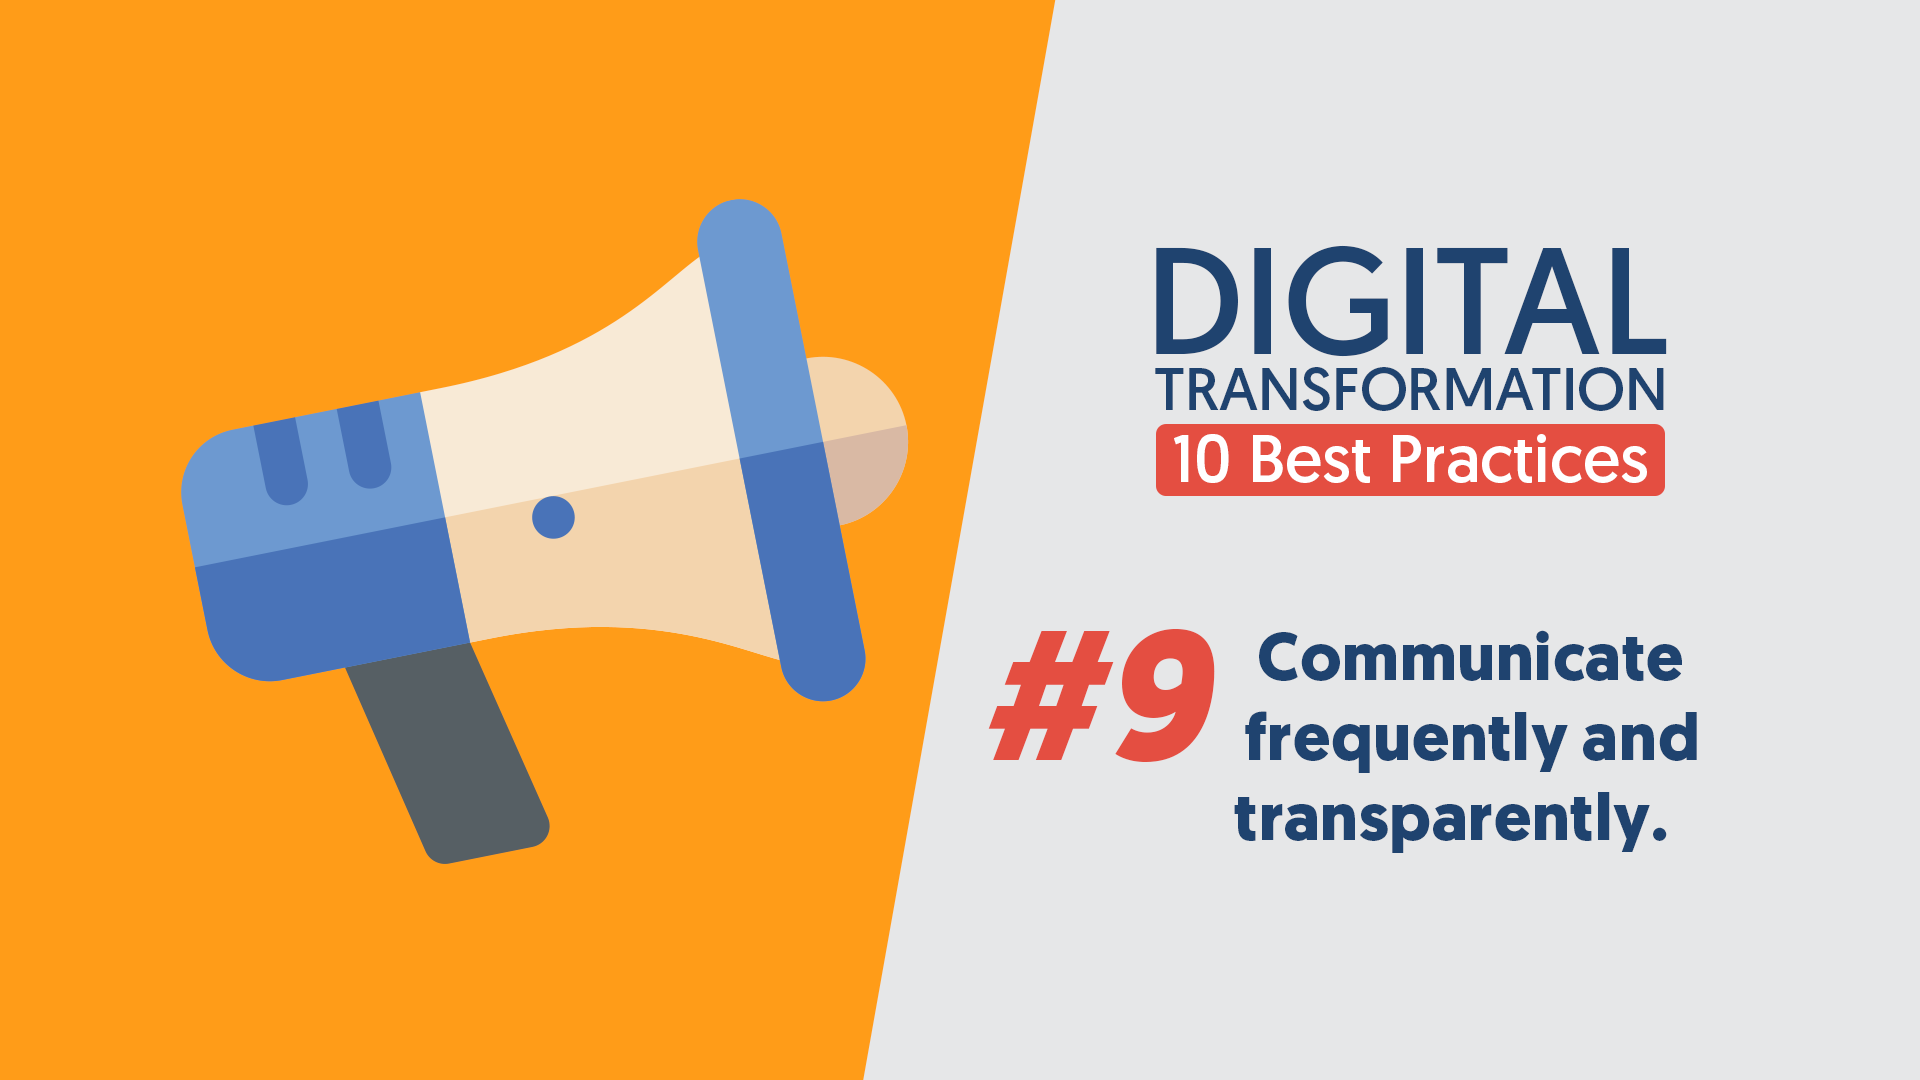 DigitalTransformation-10BestPractices-Series-Communication